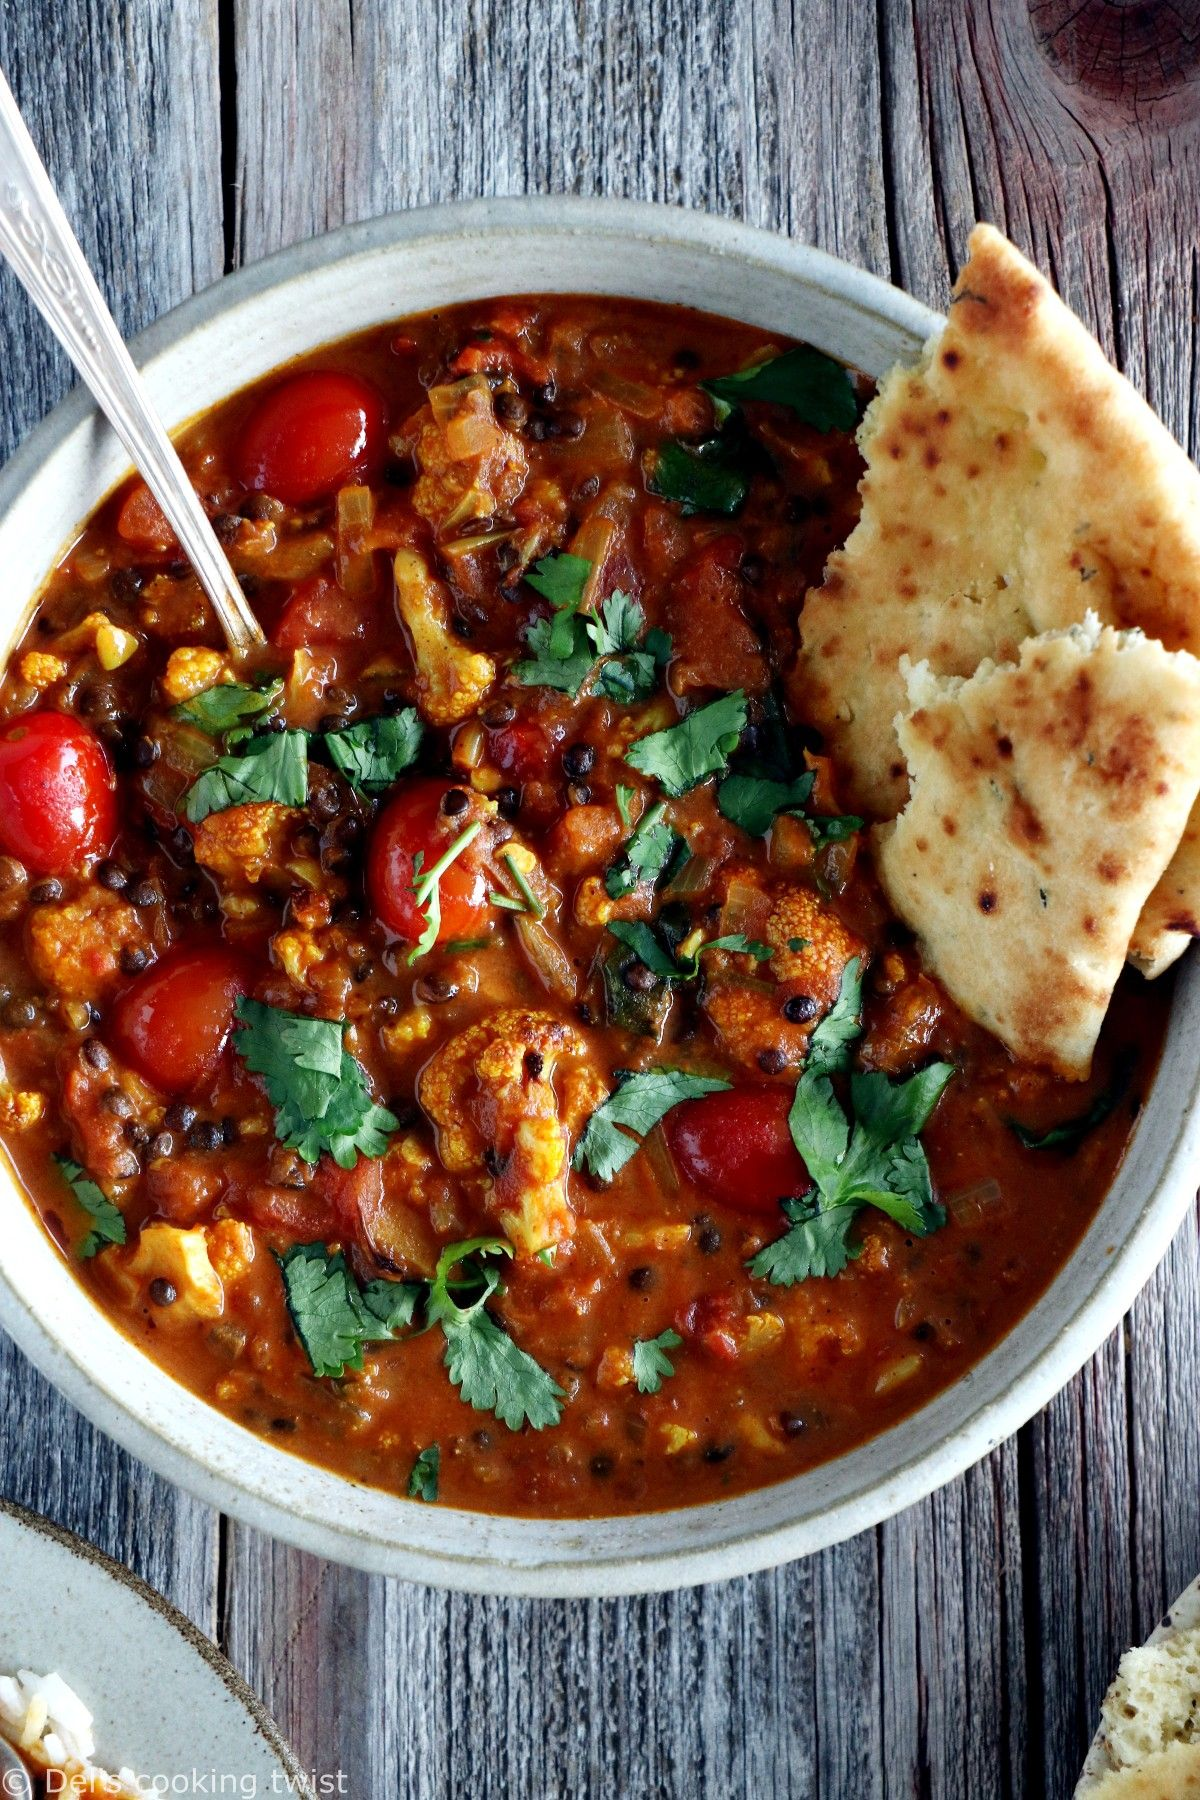 Comforting Cauliflower Lentil Curry. This creamy comforting cauliflower lentil curry is packed with delicious healthy flavors and ready in no time. Vegan and gluten-free, it's the perfect meal for busy days.